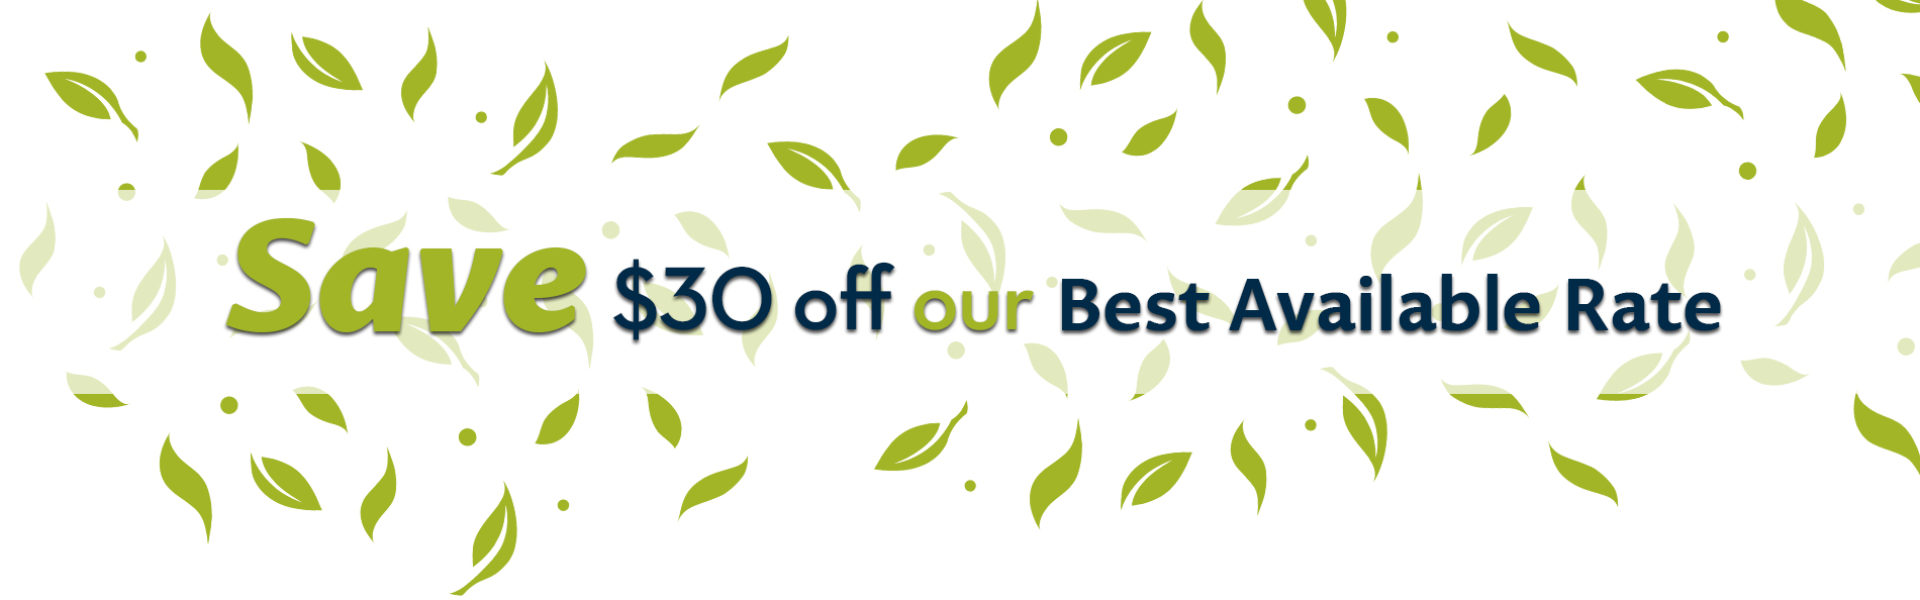 Save $30 off our best available rate banner